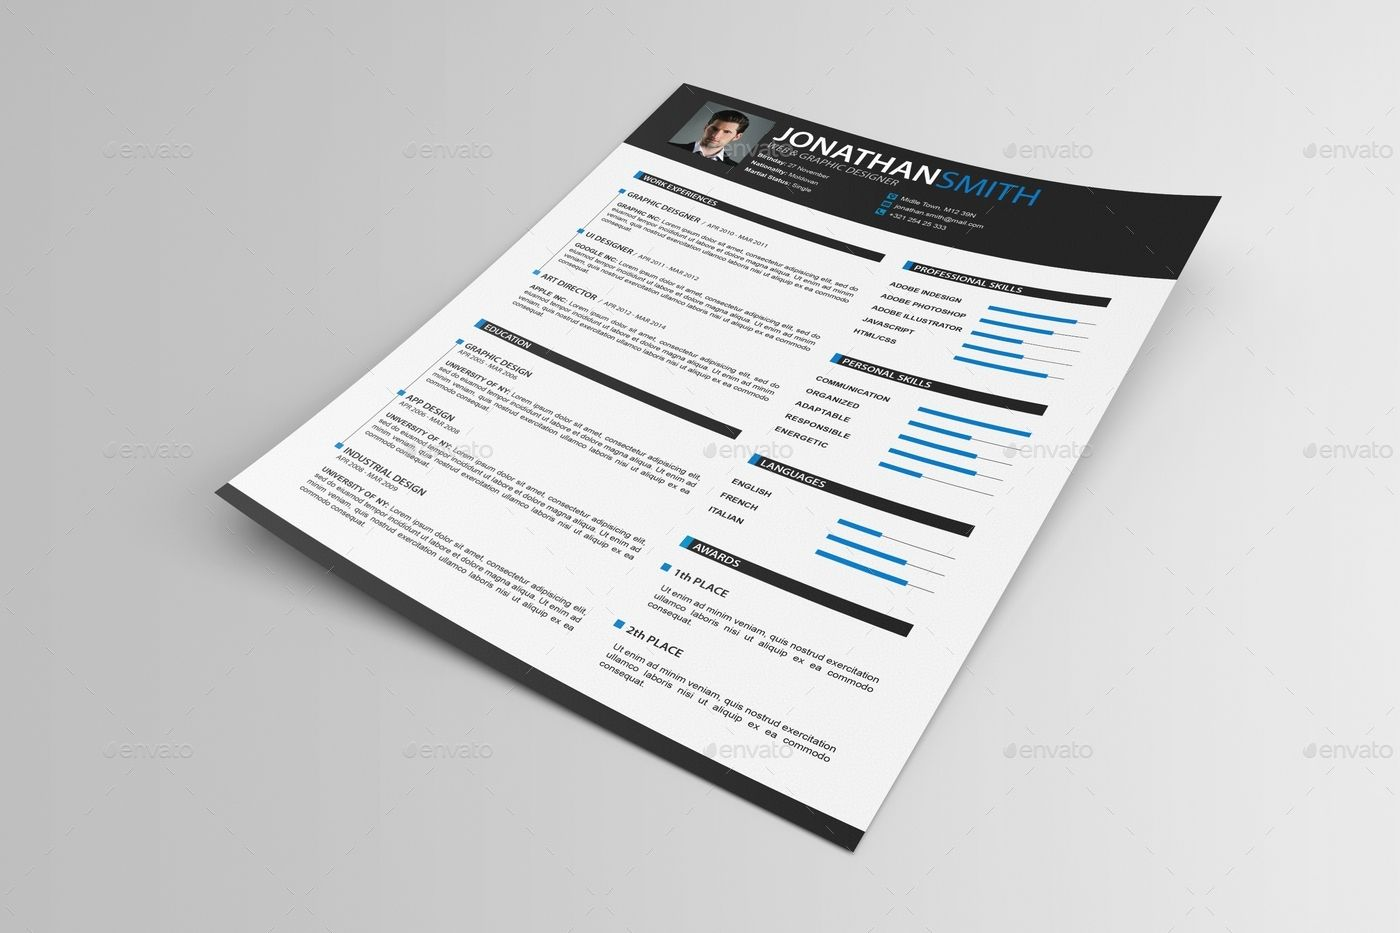 resume paper size a4 or letter